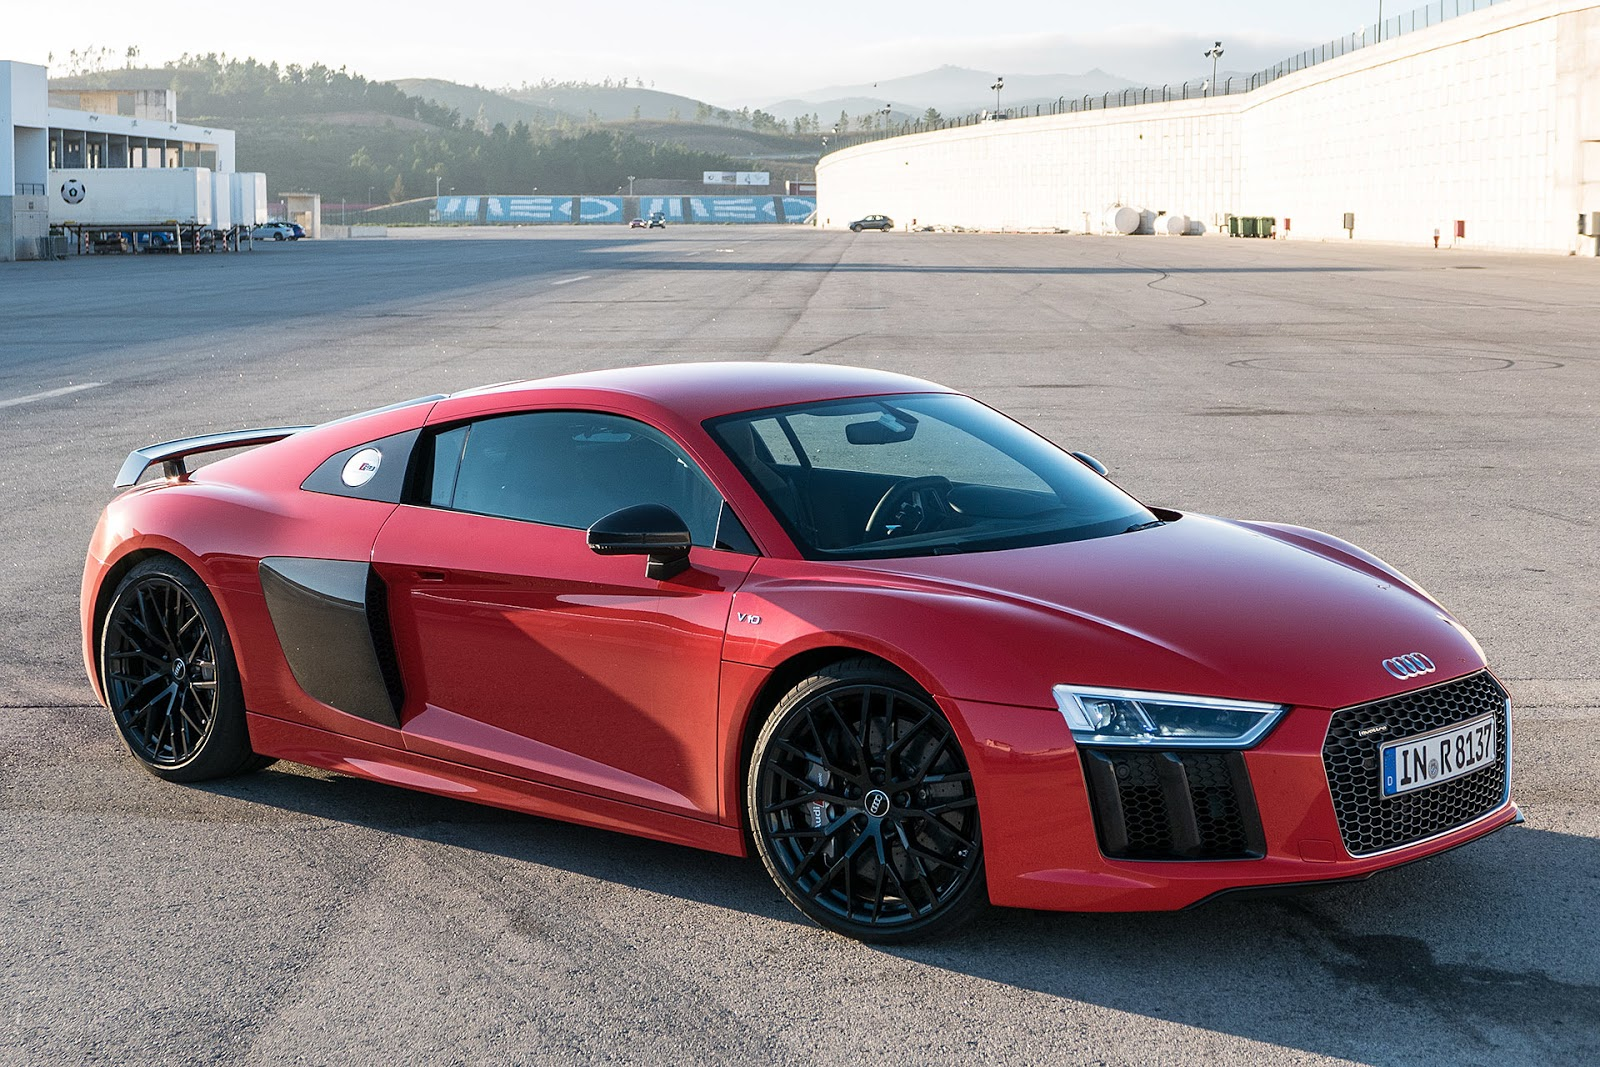 audi r8 2017 with v10 engine supercar techubpro blog of tech news new gadgets and automobiles. Black Bedroom Furniture Sets. Home Design Ideas